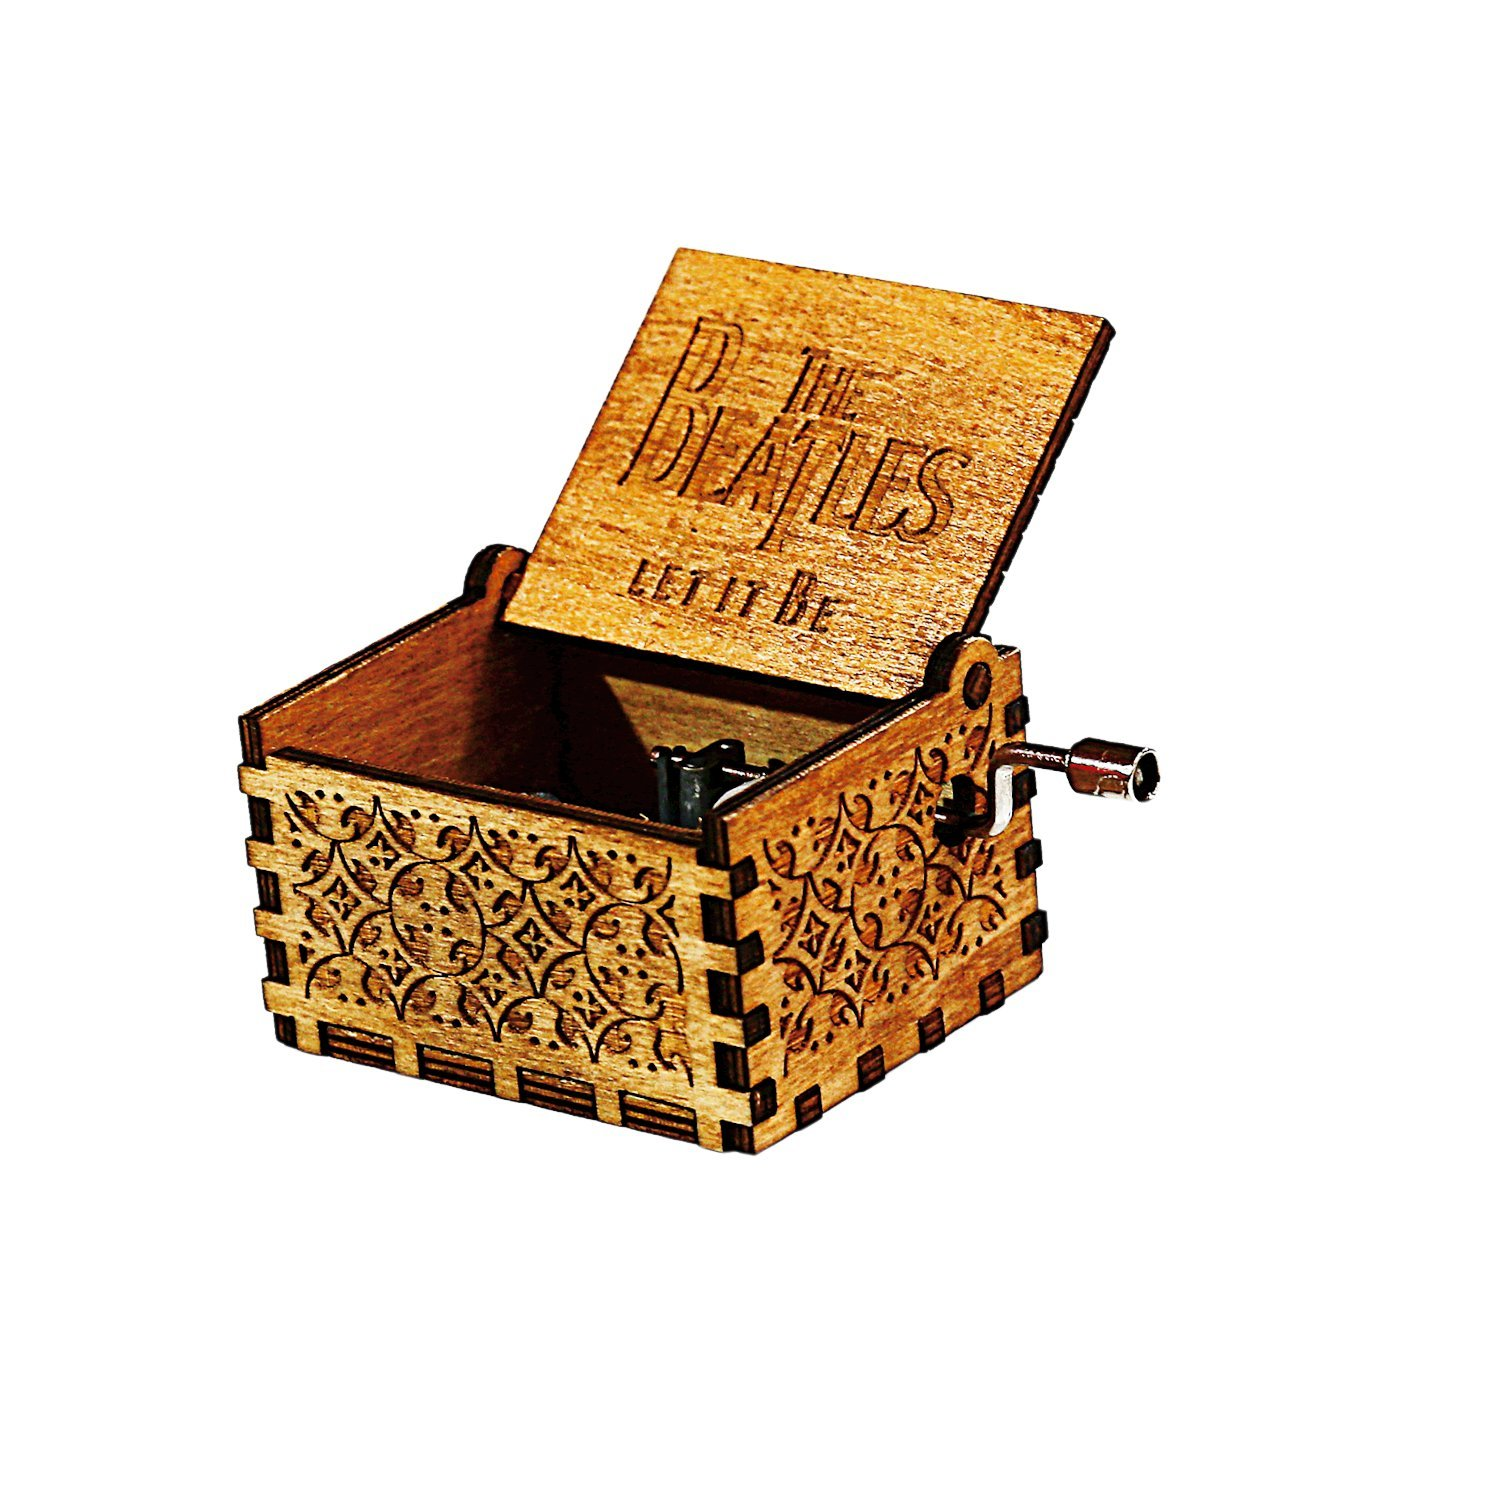 HOSALA Personalizable Music Box Handmade Engraved Wooden (Wood, LET IT BE)